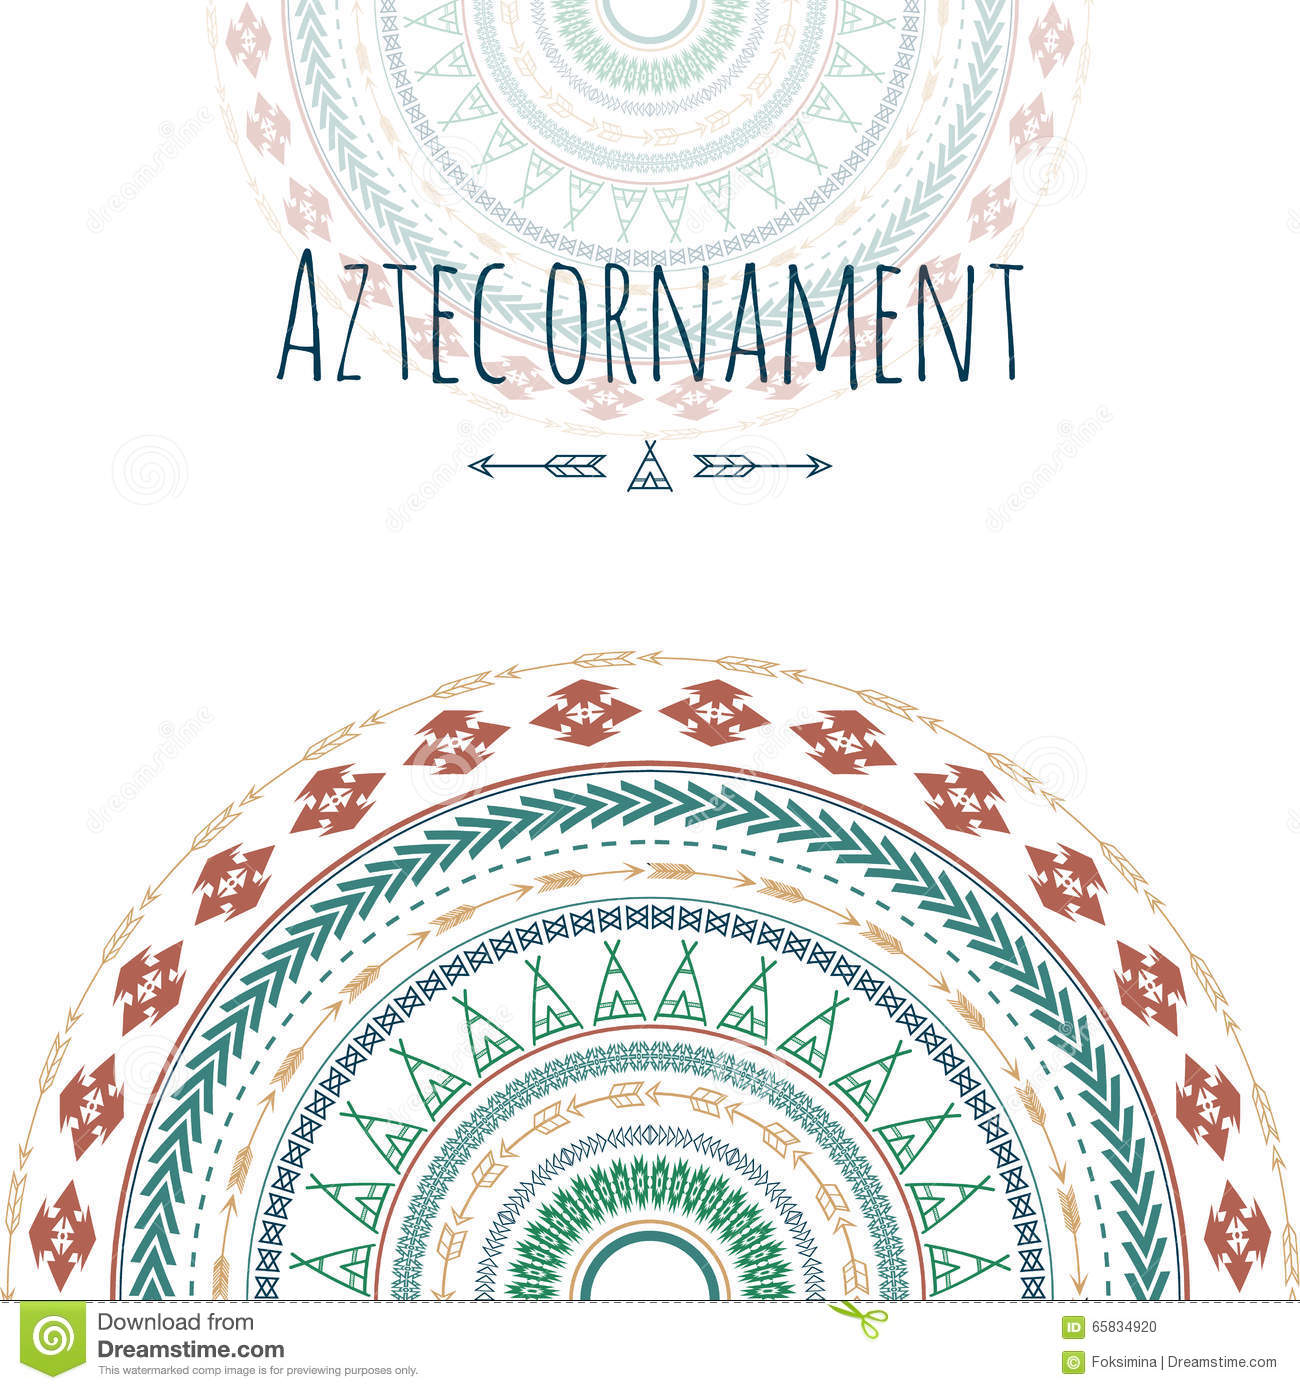 Aztec ornament circle greeting card. Tribal design for your invitations.